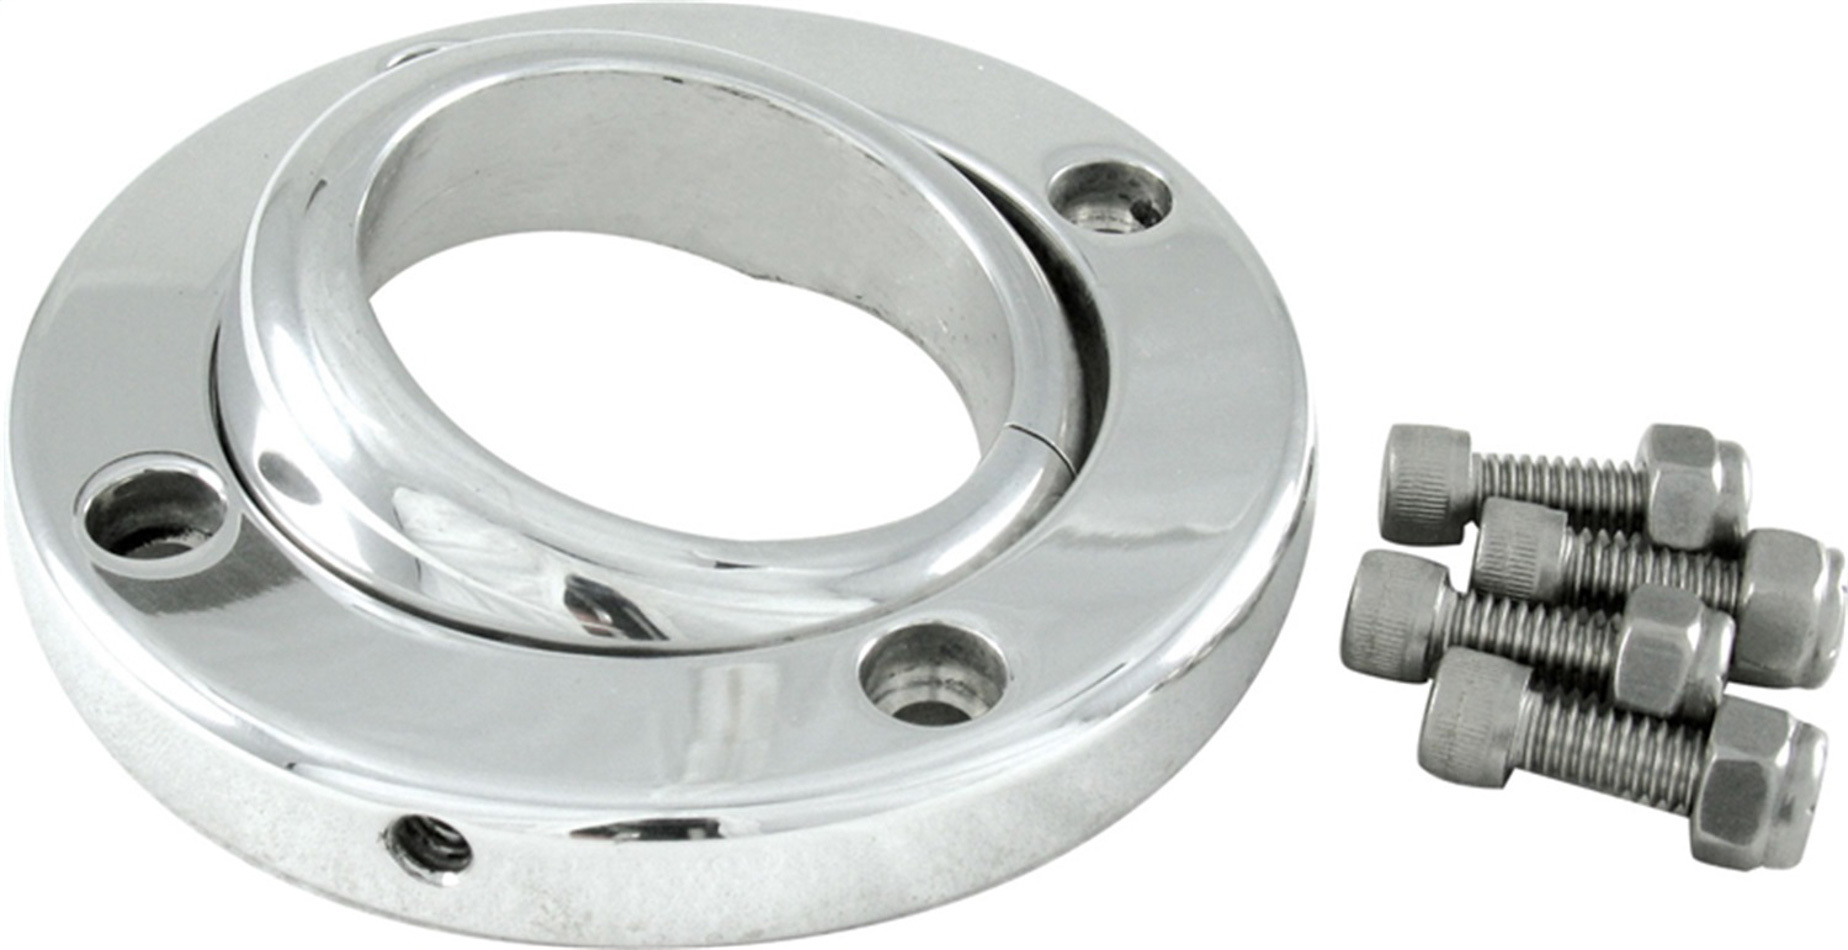 Borgeson Swivel Floor Mount For 1.75in Column Polished